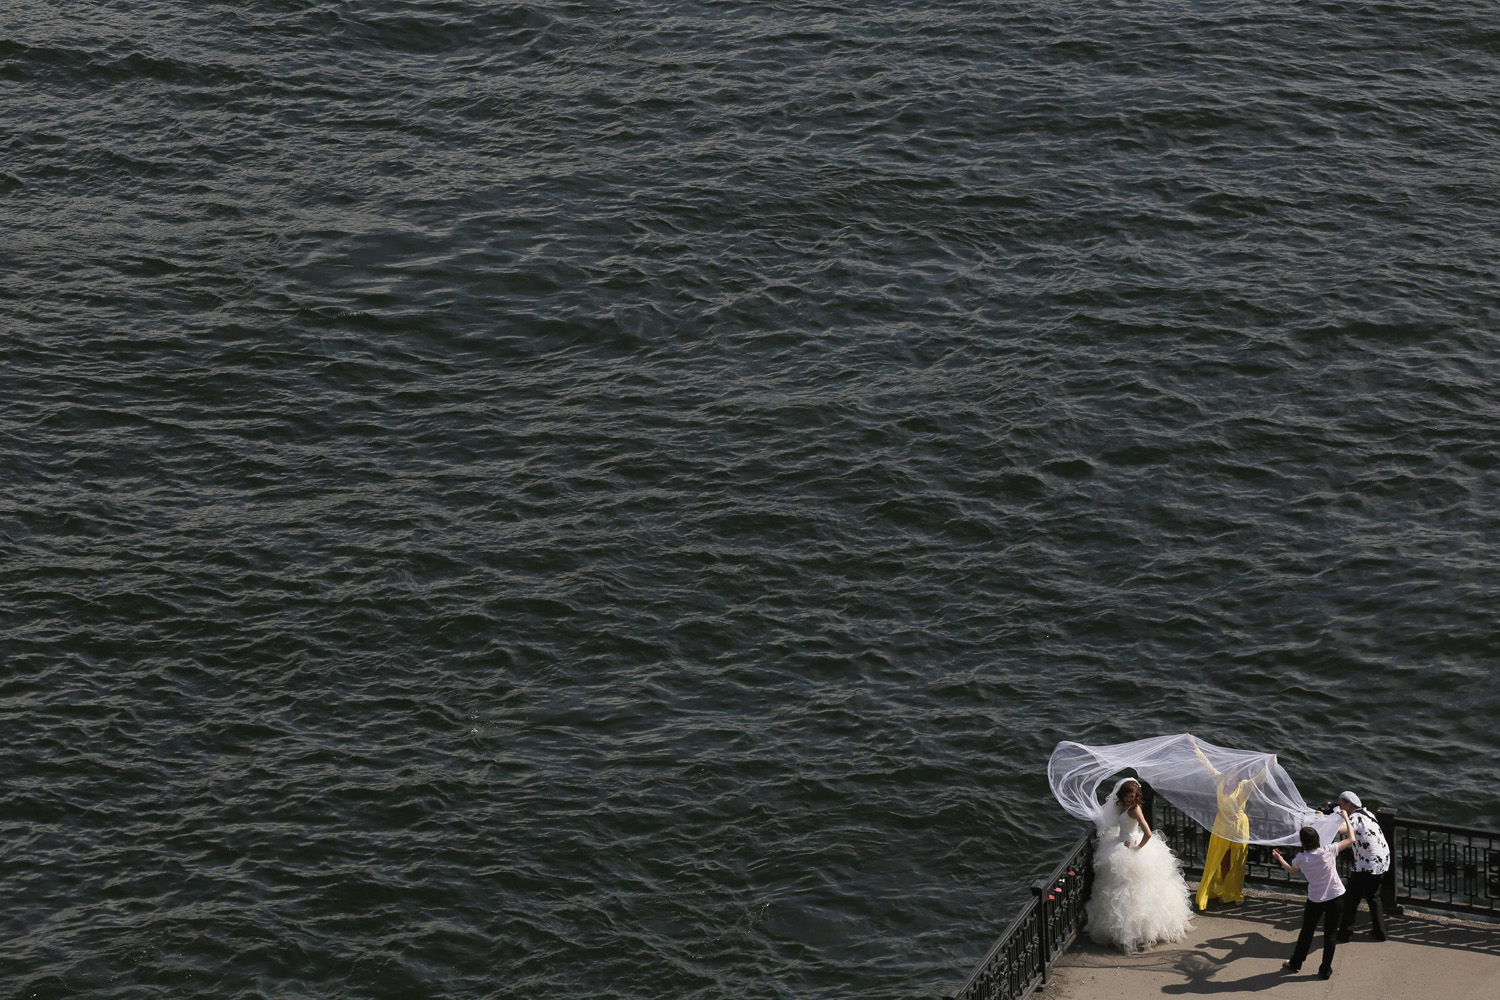 Jun. 27, 2014. A bride poses for a photographer on an embankment at the Yenisei River in Russia's Siberian city of Krasnoyarsk.